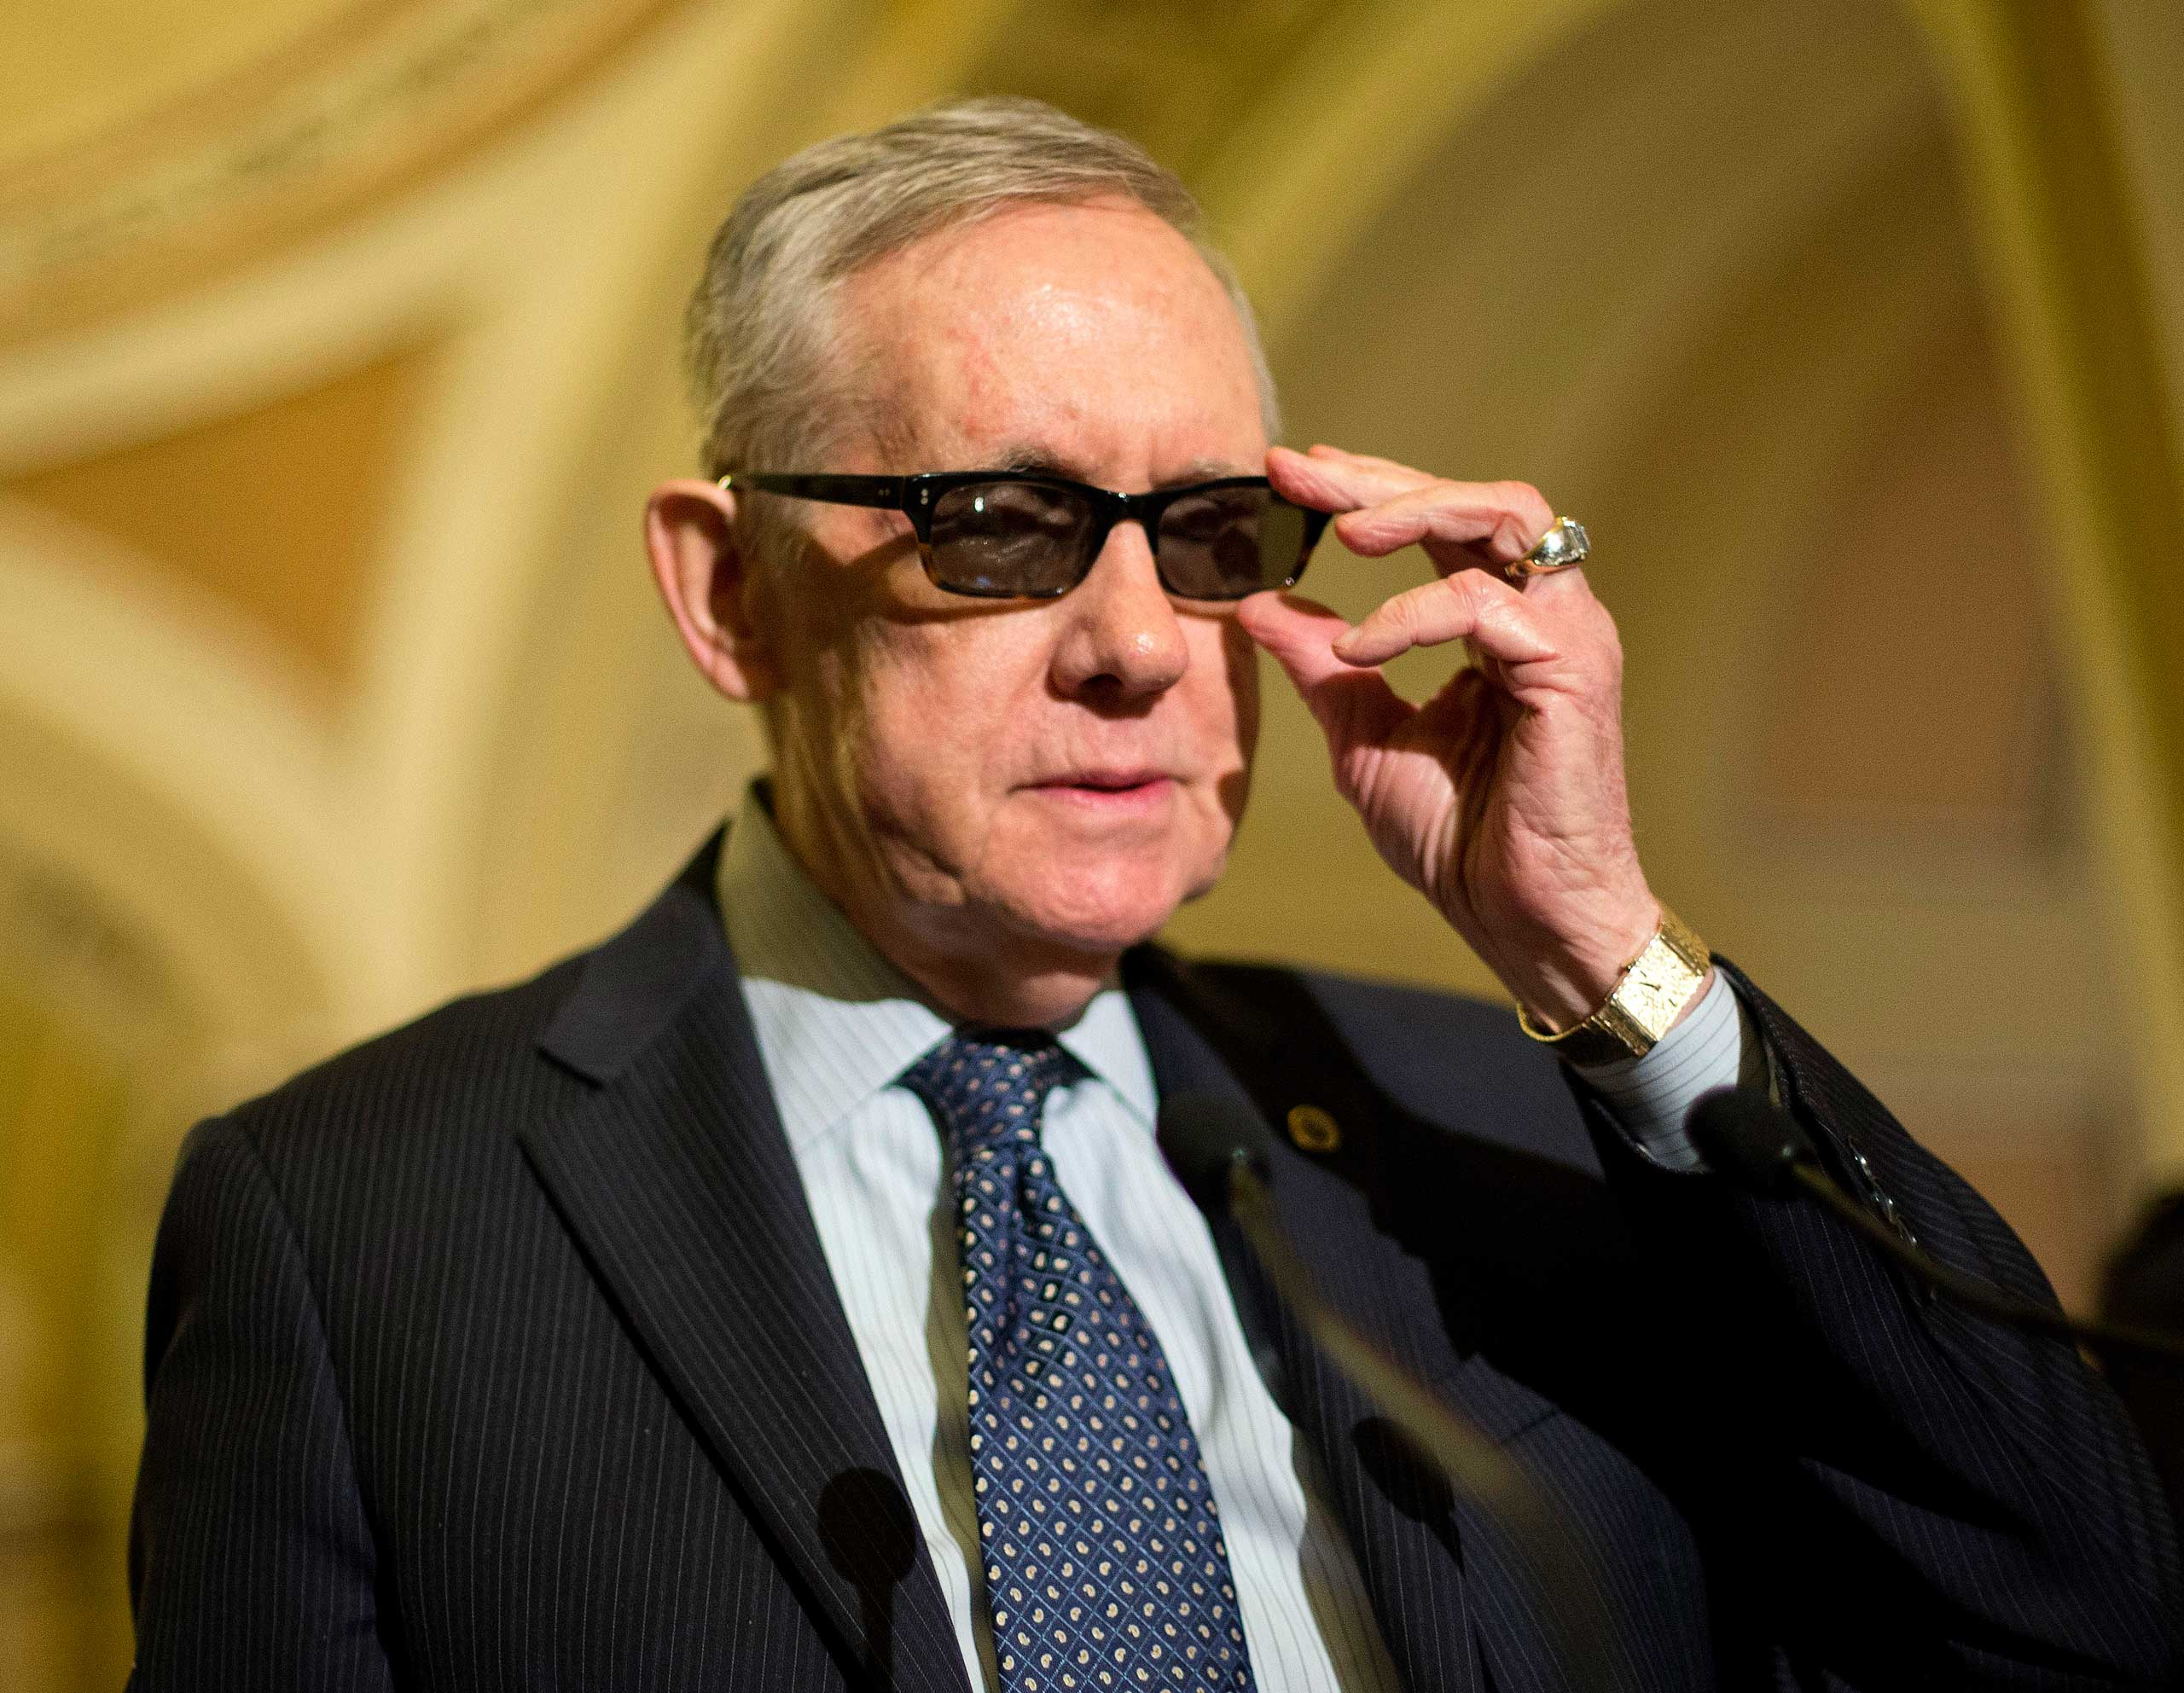 Senate Minority Leader Harry Reid of Nev. adjusts his glasses as he speaks to reporters on Capitol Hill in Washington, March 24, 2015.